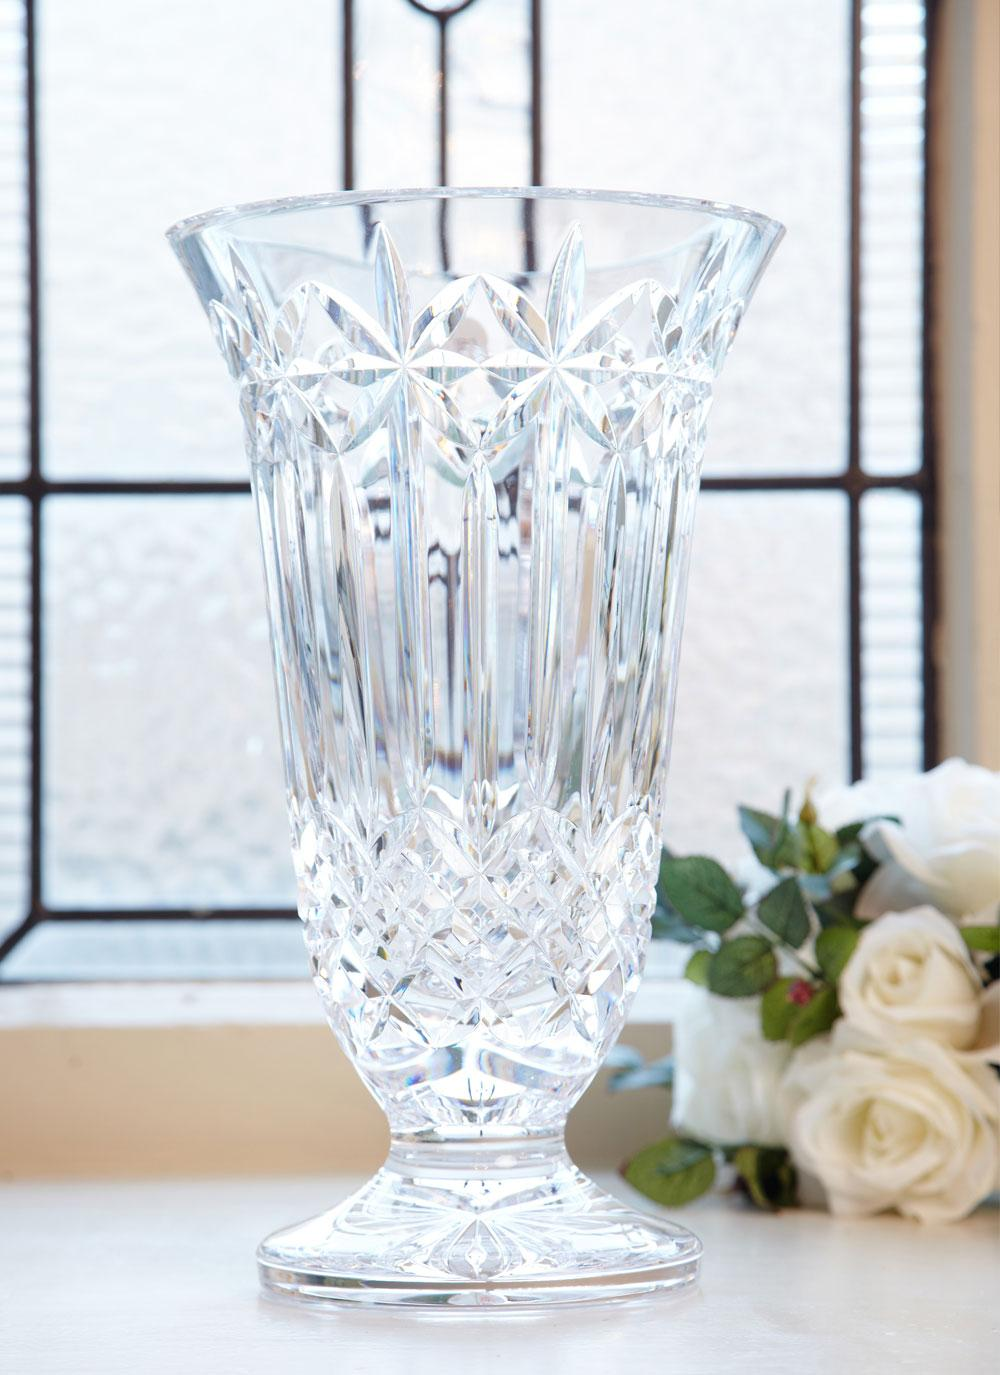 Waterford crystal starburst 12 inch vase blarney waterford crystal starburst 12 inch vase reviewsmspy